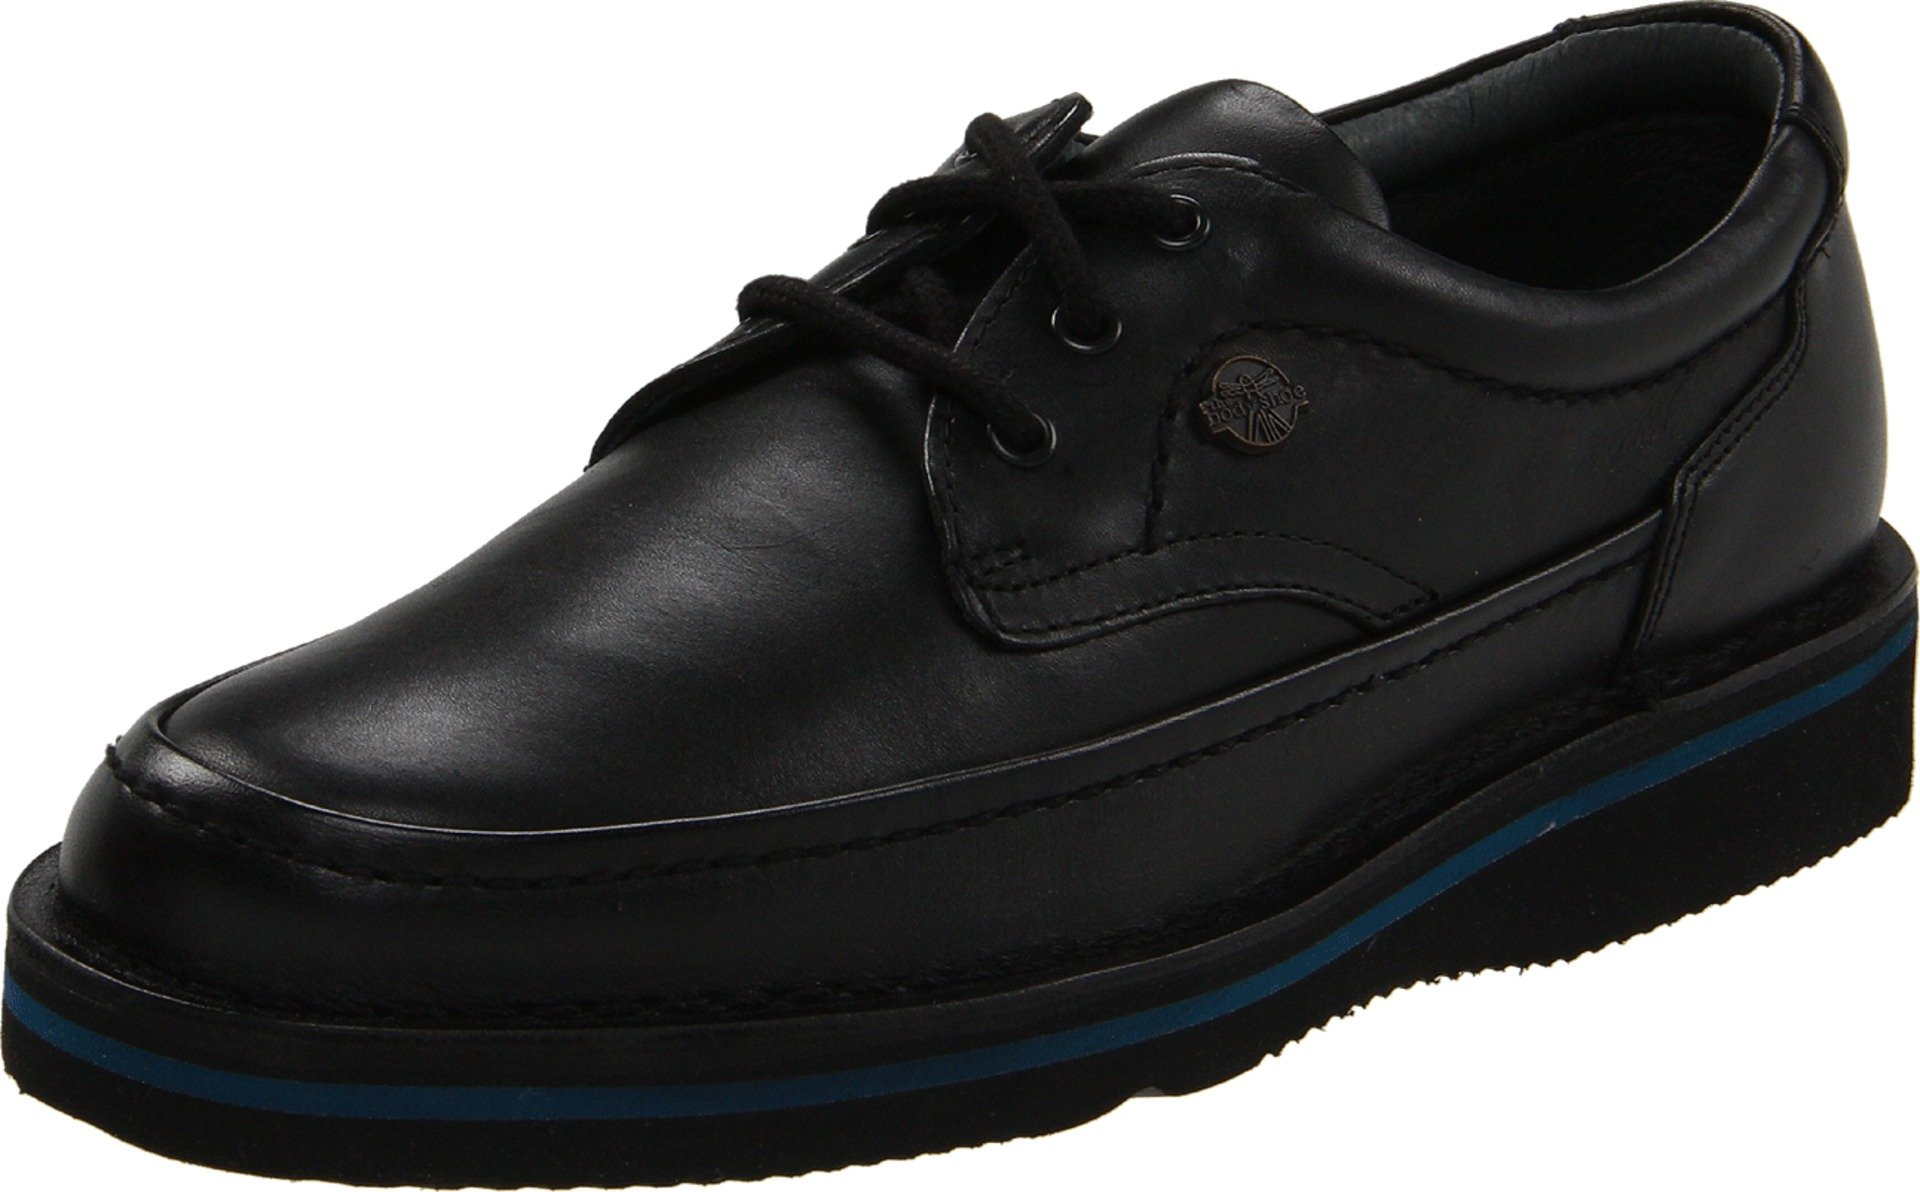 Hush Puppies Men's Mall Walker Oxford,Black Leather,10.5 M US by Hush Puppies